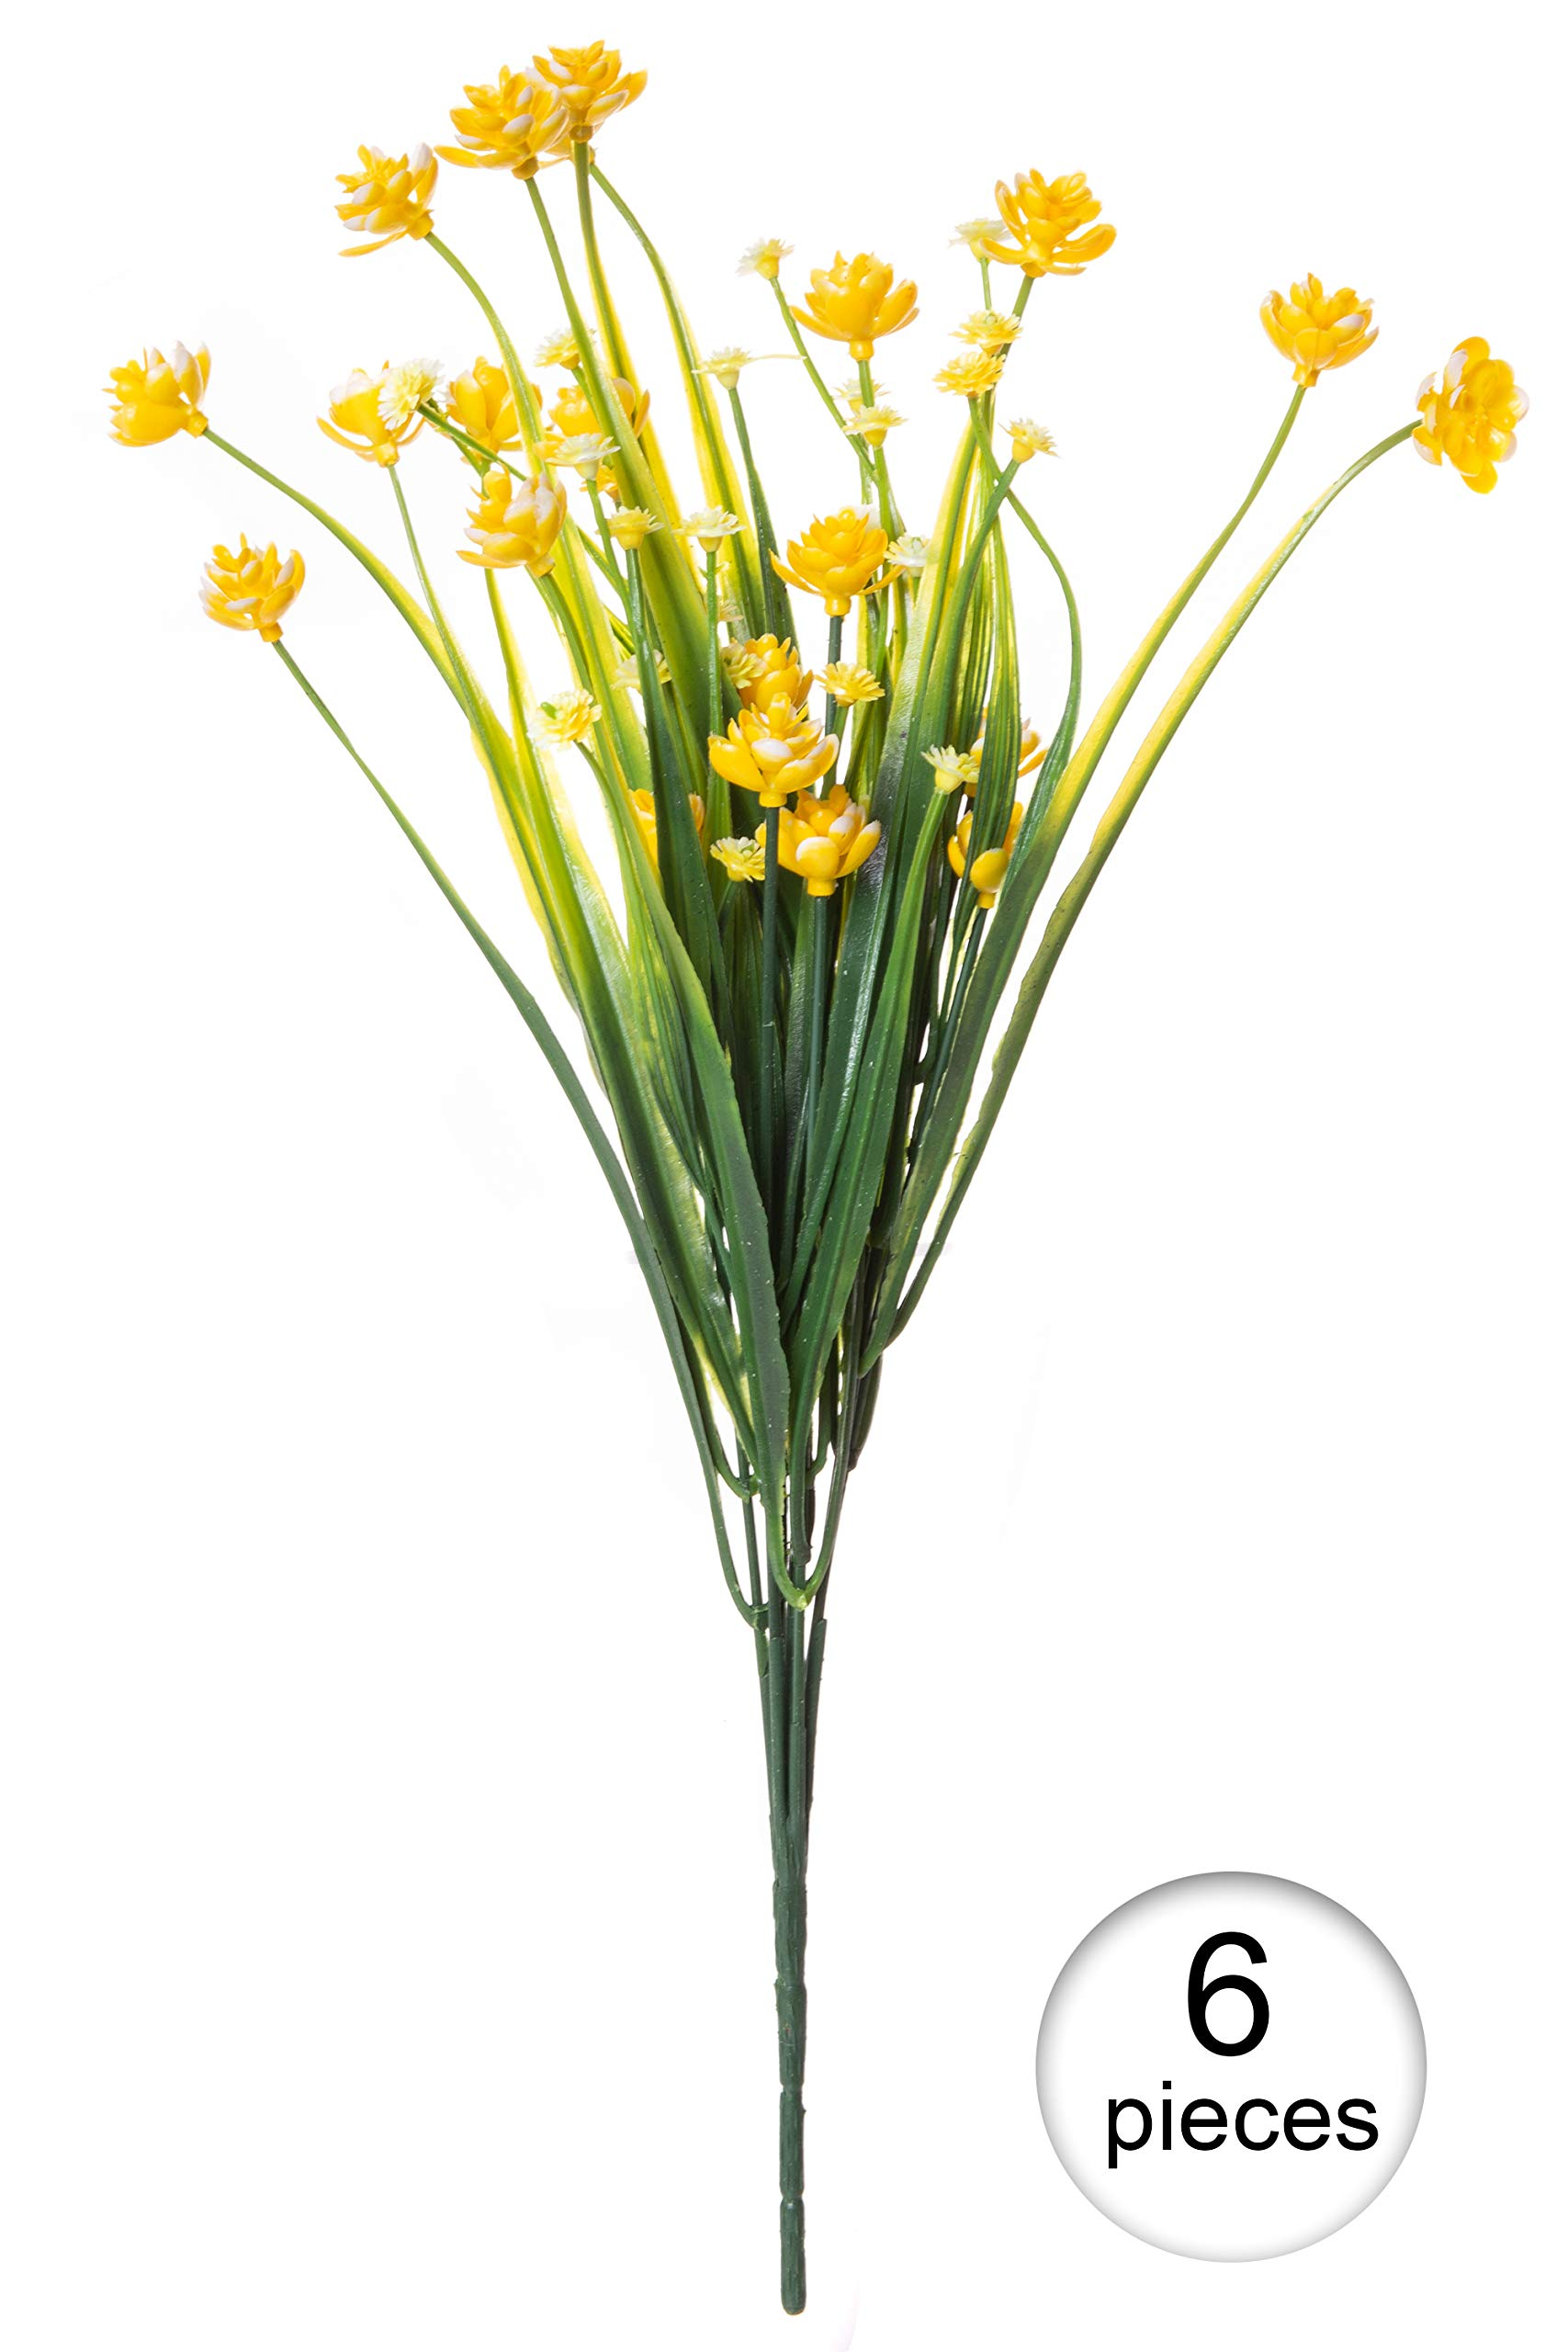 Red Co. Faux Floral Bouquet, Artificial Fake Greenery Flowers for Home and Outdoor Garden Decor, 6 Single Picks, Spring Yellow by Red Co. (Image #2)